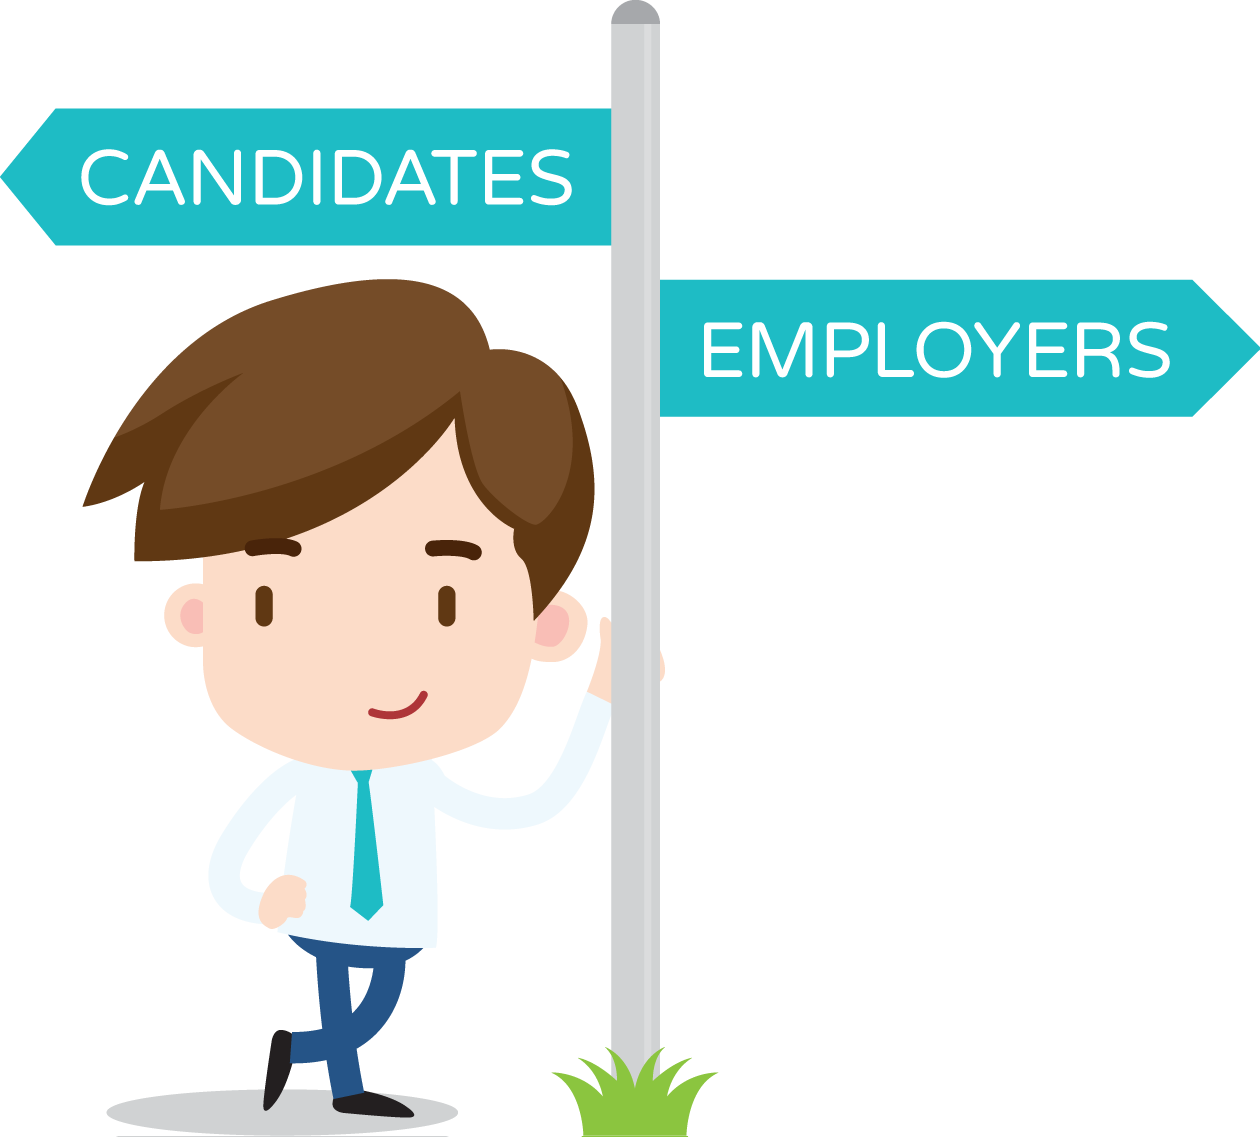 A cartoon character dressed in a suit, leaning up a signpost directing people to the candidates or employers sides of the website